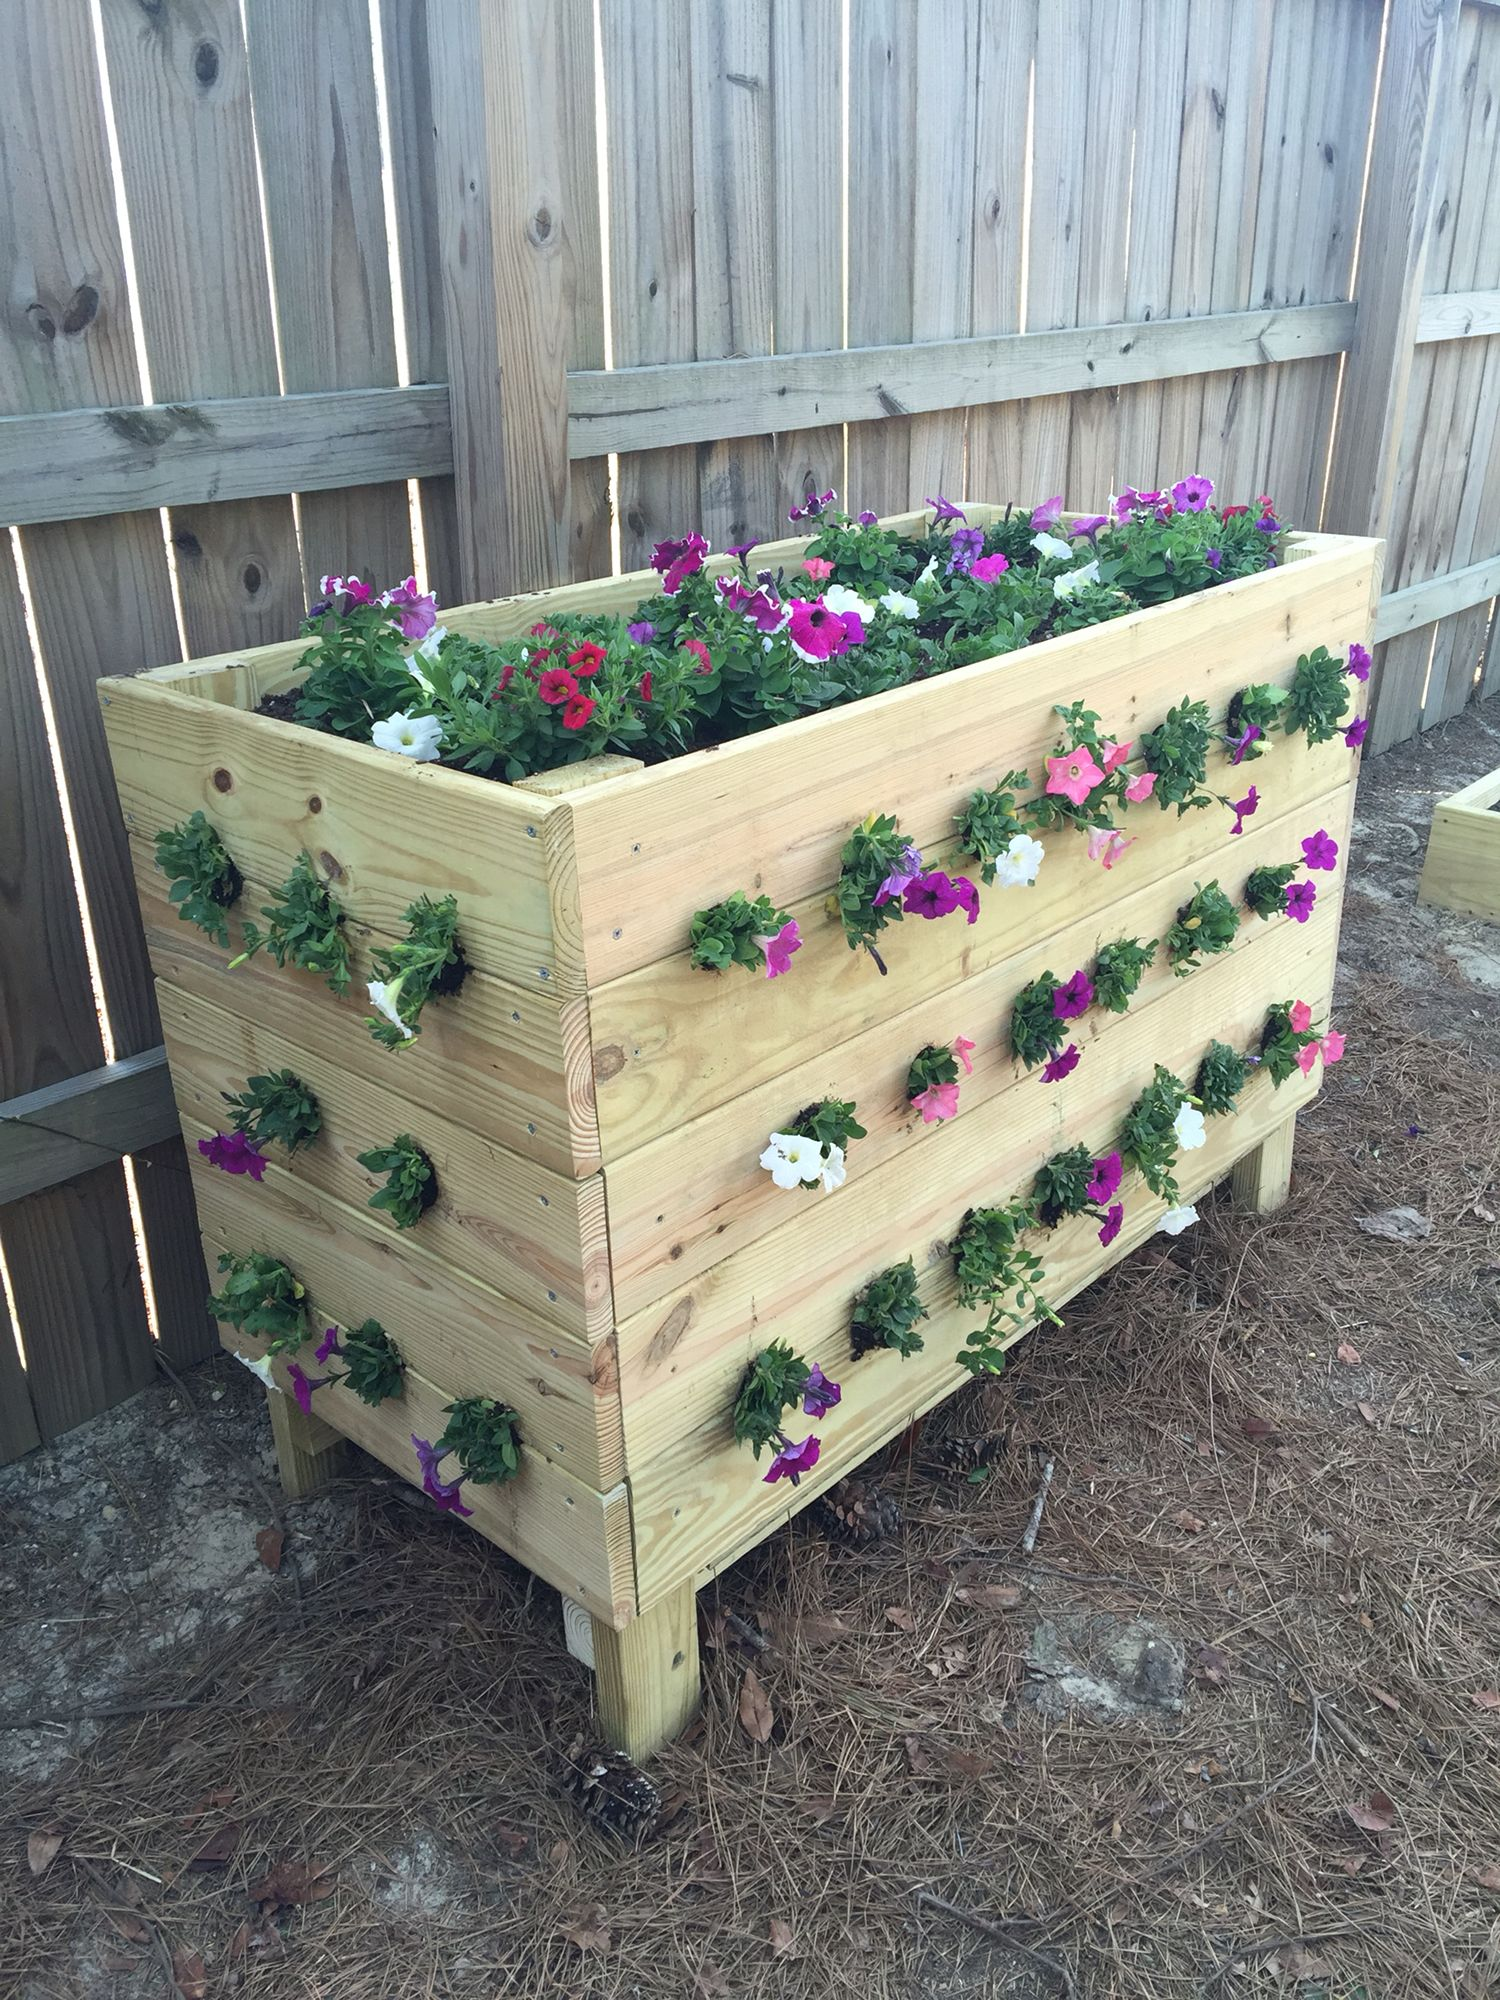 Handmade Flower Box Made 2 Holes For Wave Petunias To Be Added